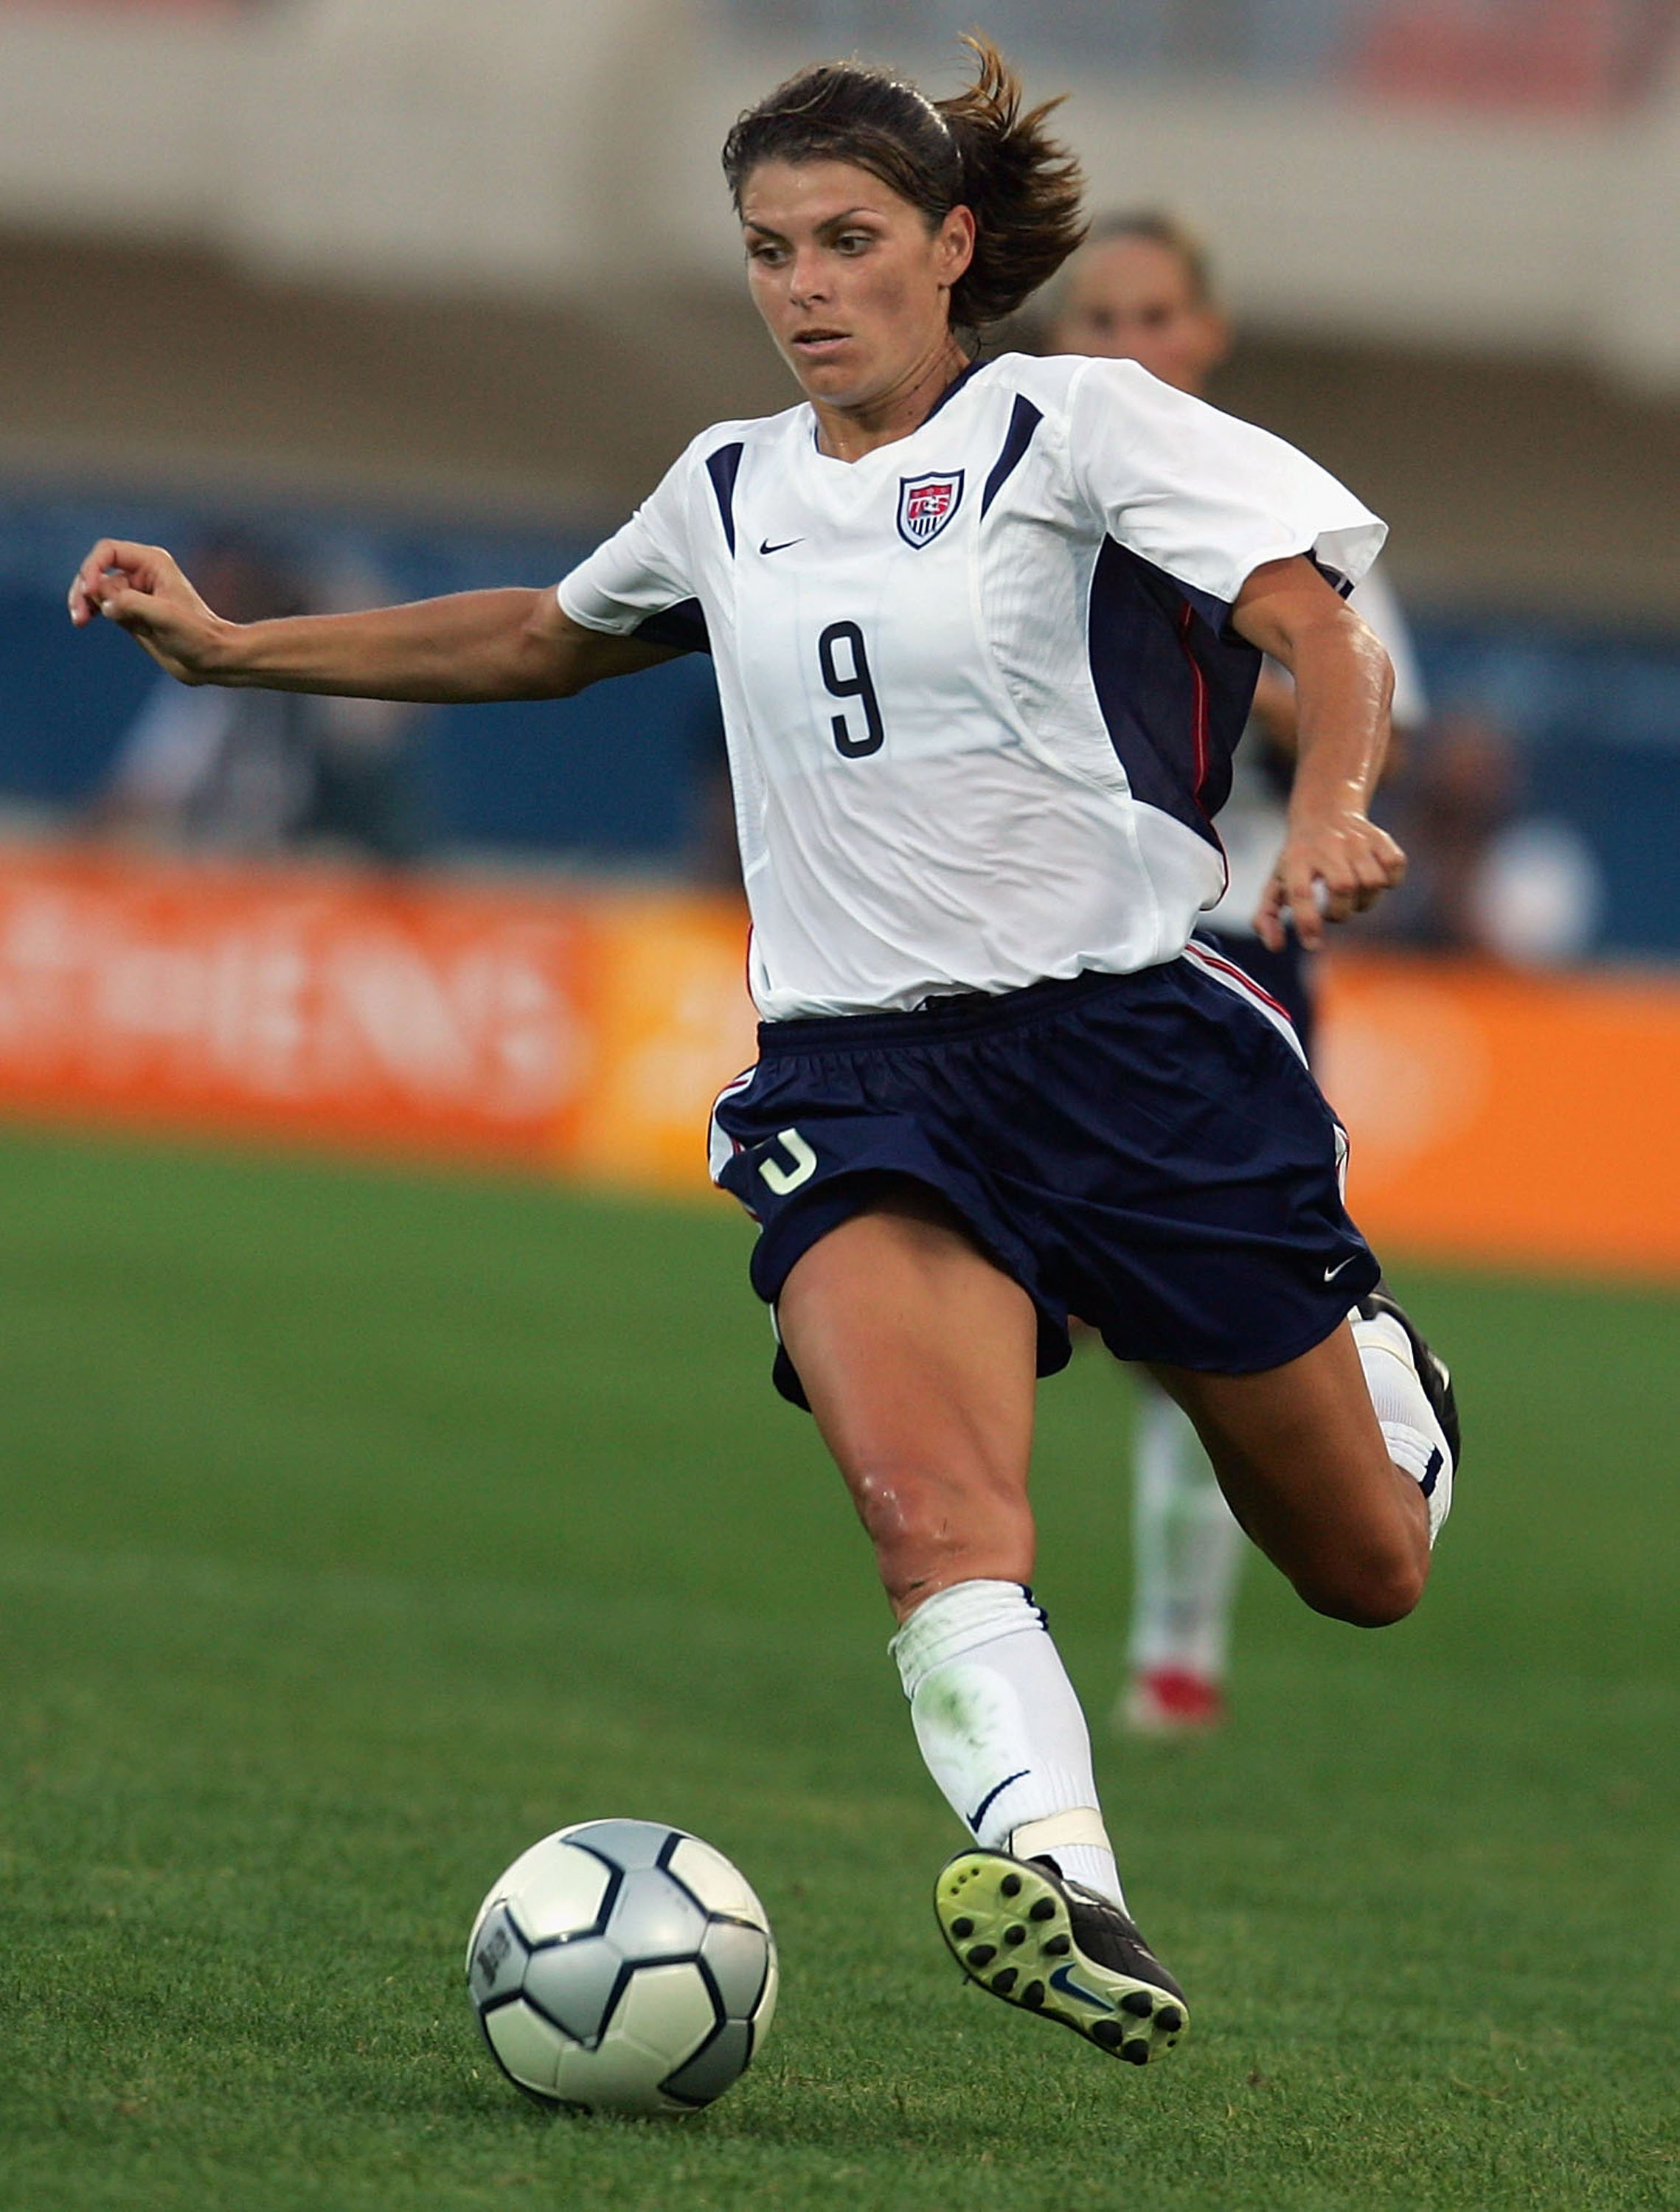 Mia Hamm - First woman inducted into the World Football Hall of Fame, two-time Olympic gold medalist, two-time FIFA Women's World Cup champion